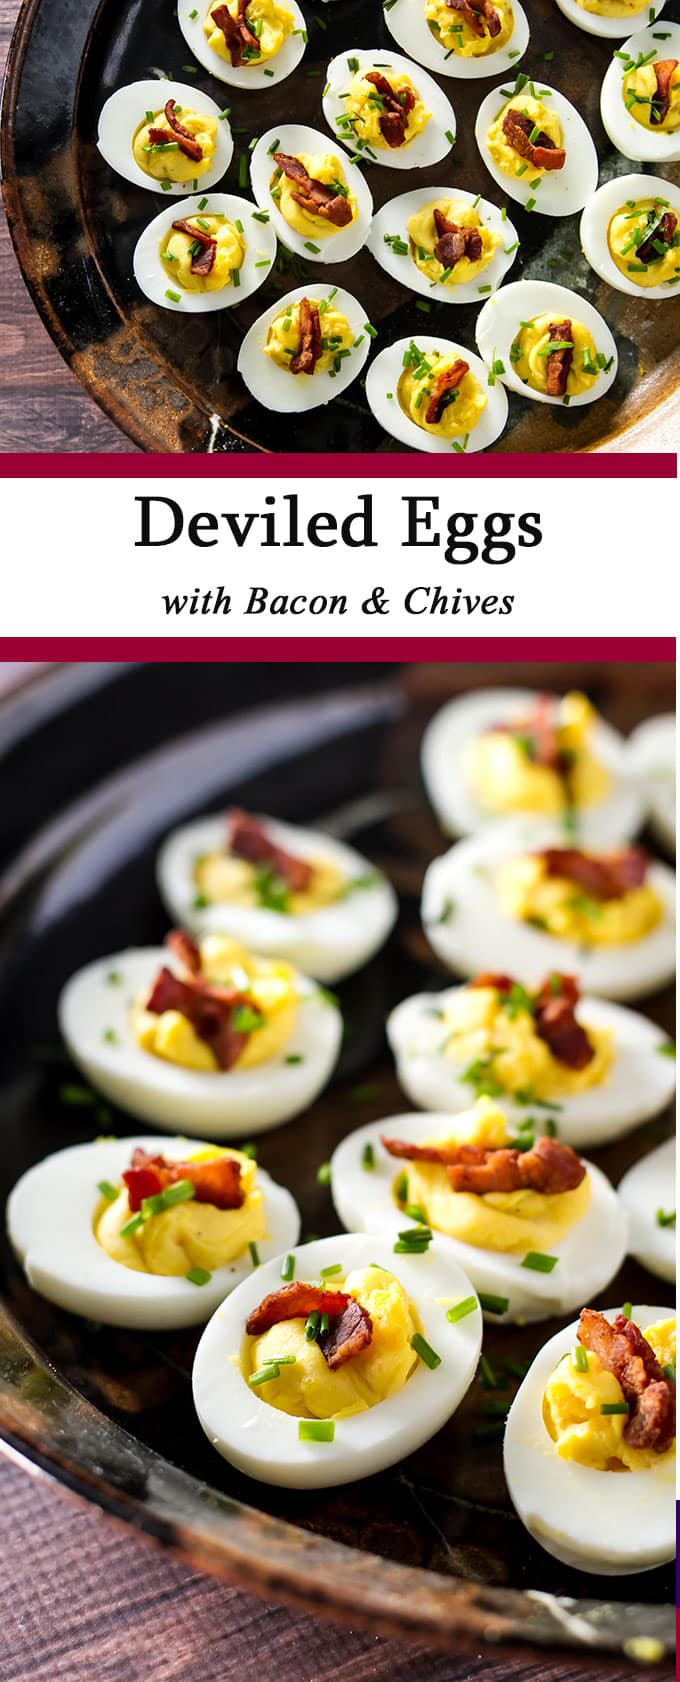 Deviled eggs are always a favorite appetizer. These creamy deviled eggs are topped with crispy bacon and fresh chives - they are sure to disappear fast